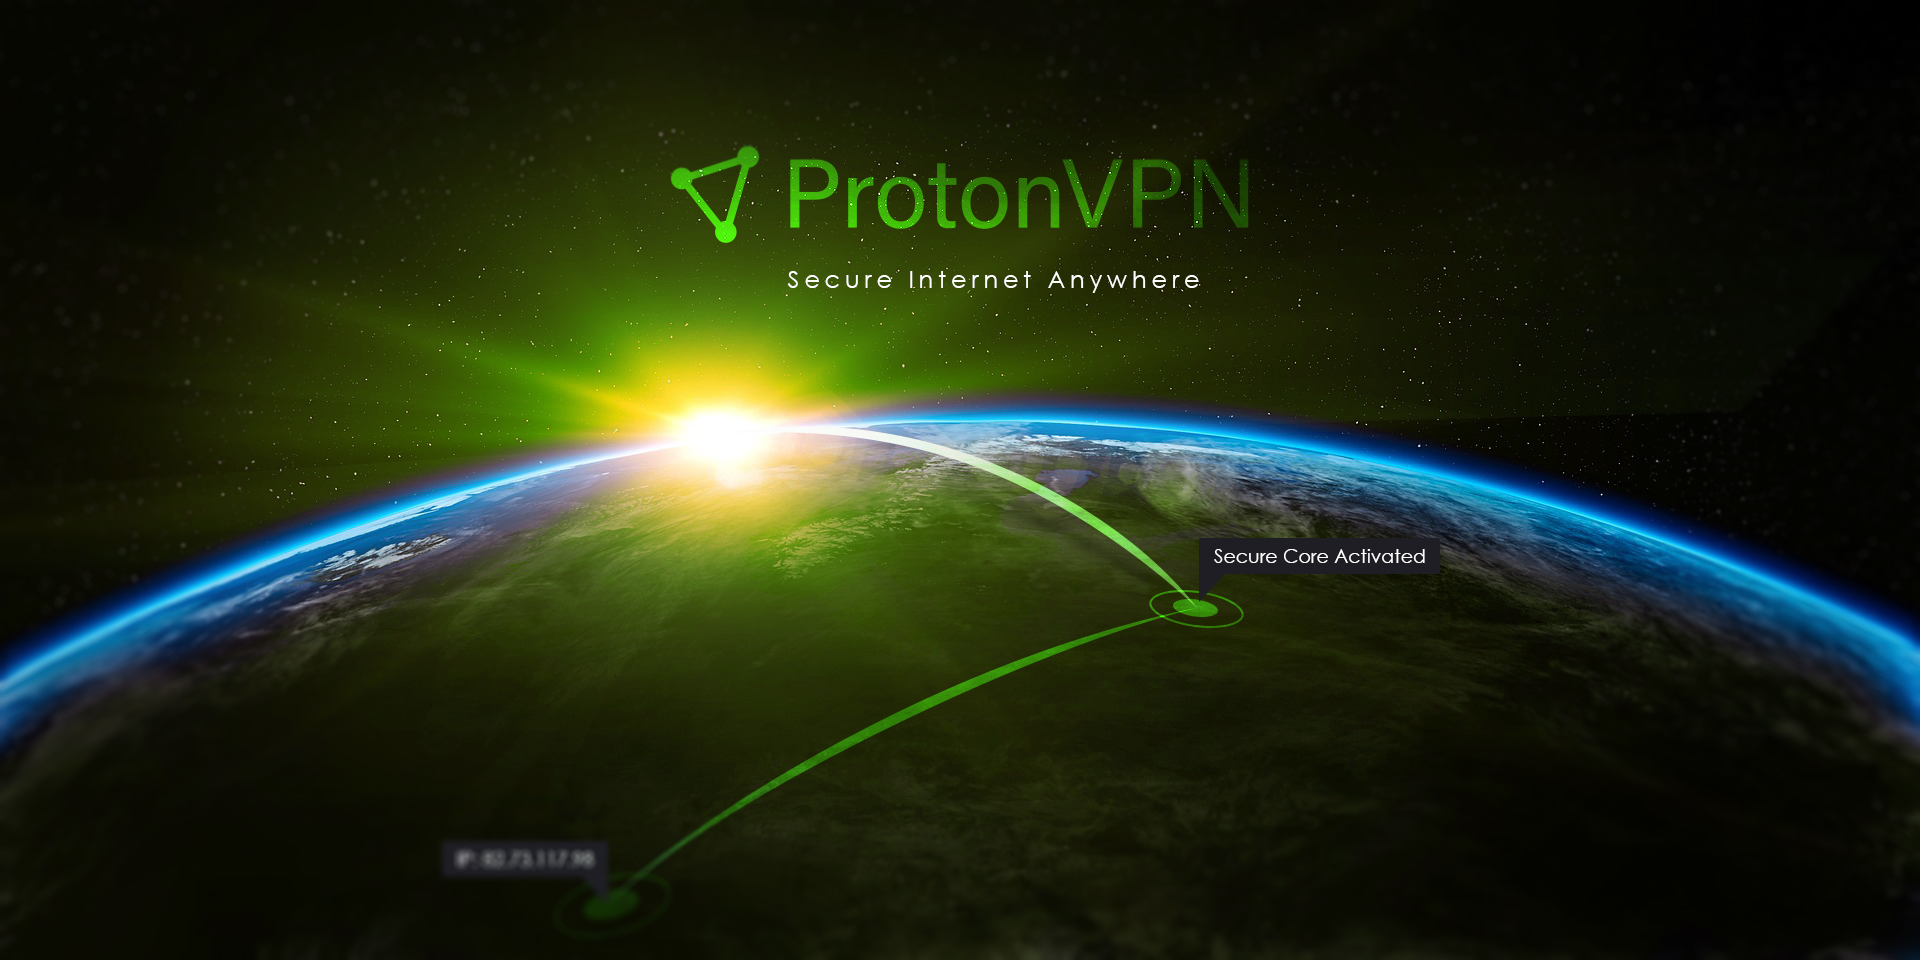 ProtonVPN helps keep your digital life private for free